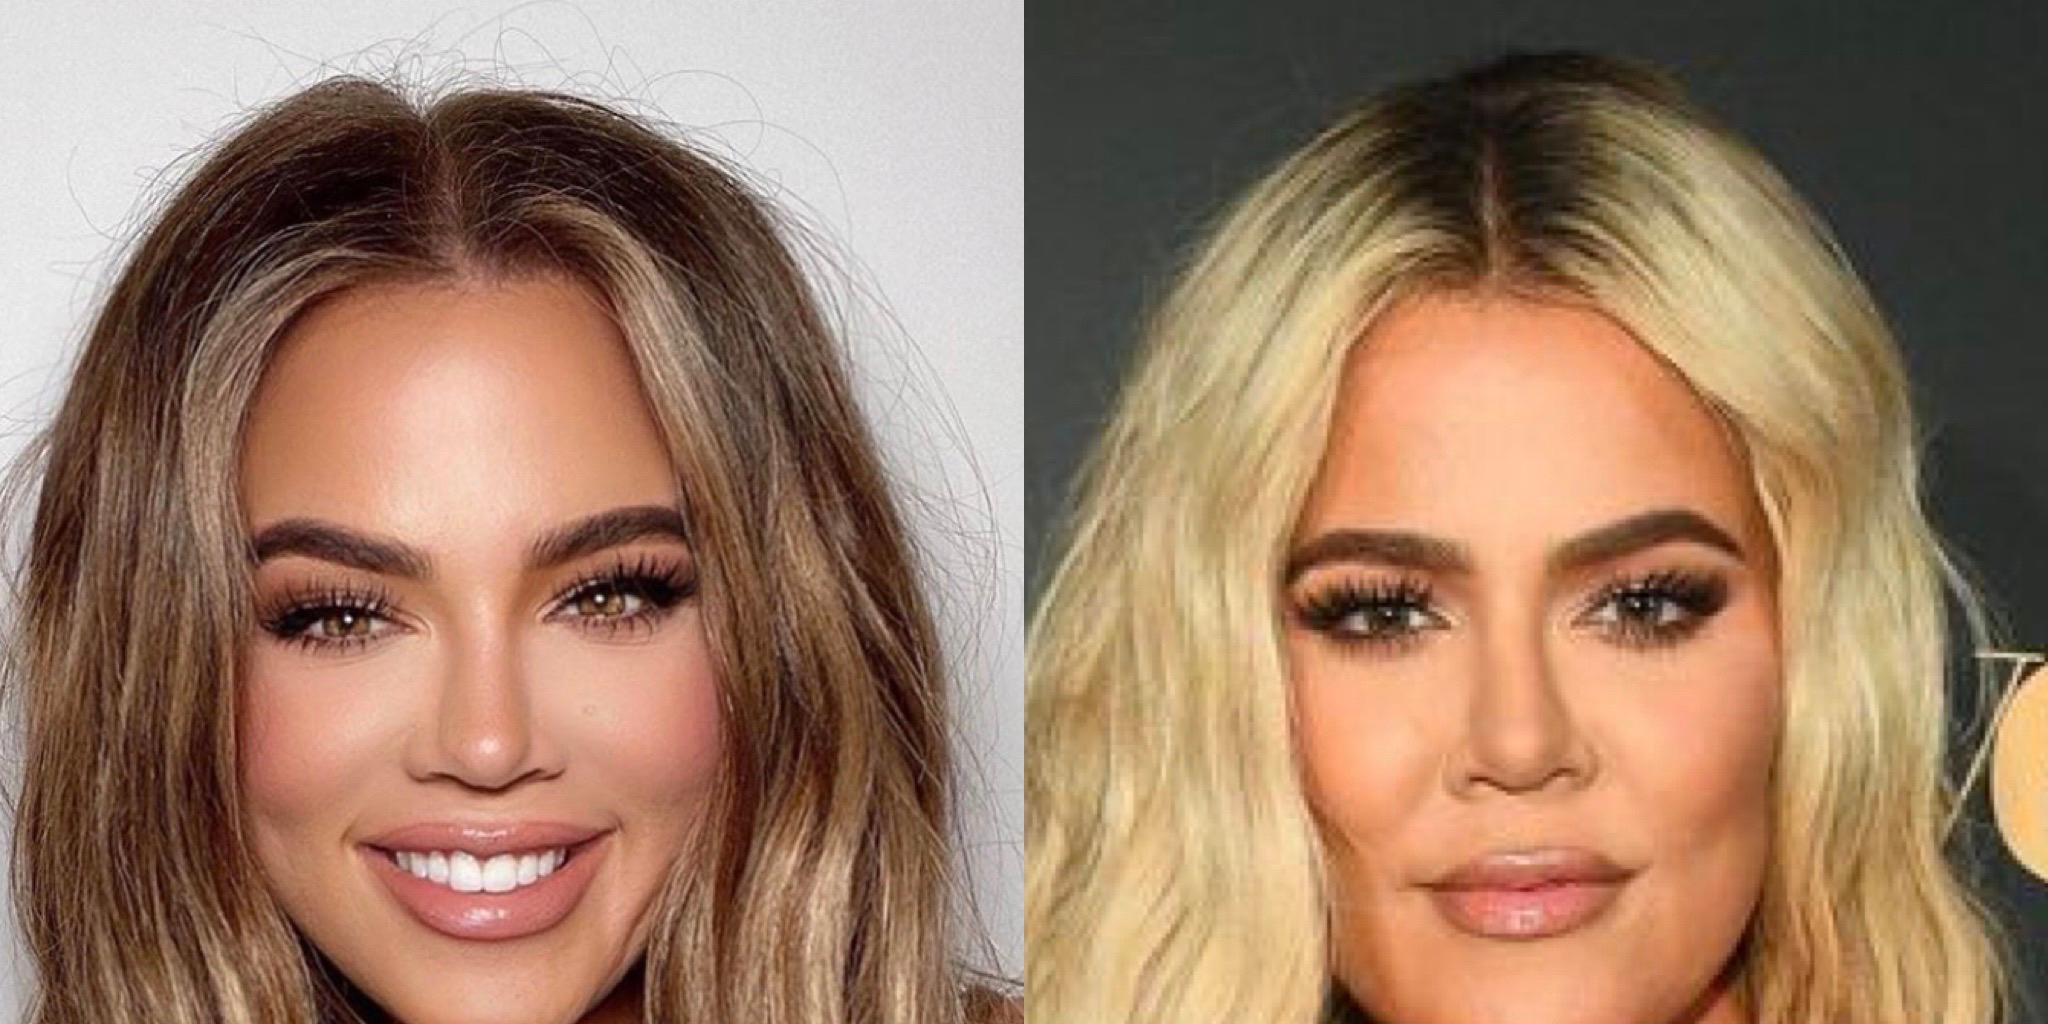 KUWTK: Khloe Kardashian Spooks Herself And Her Fans With 'Scary' Video Filter That Makes Her Look Unrecognizable!